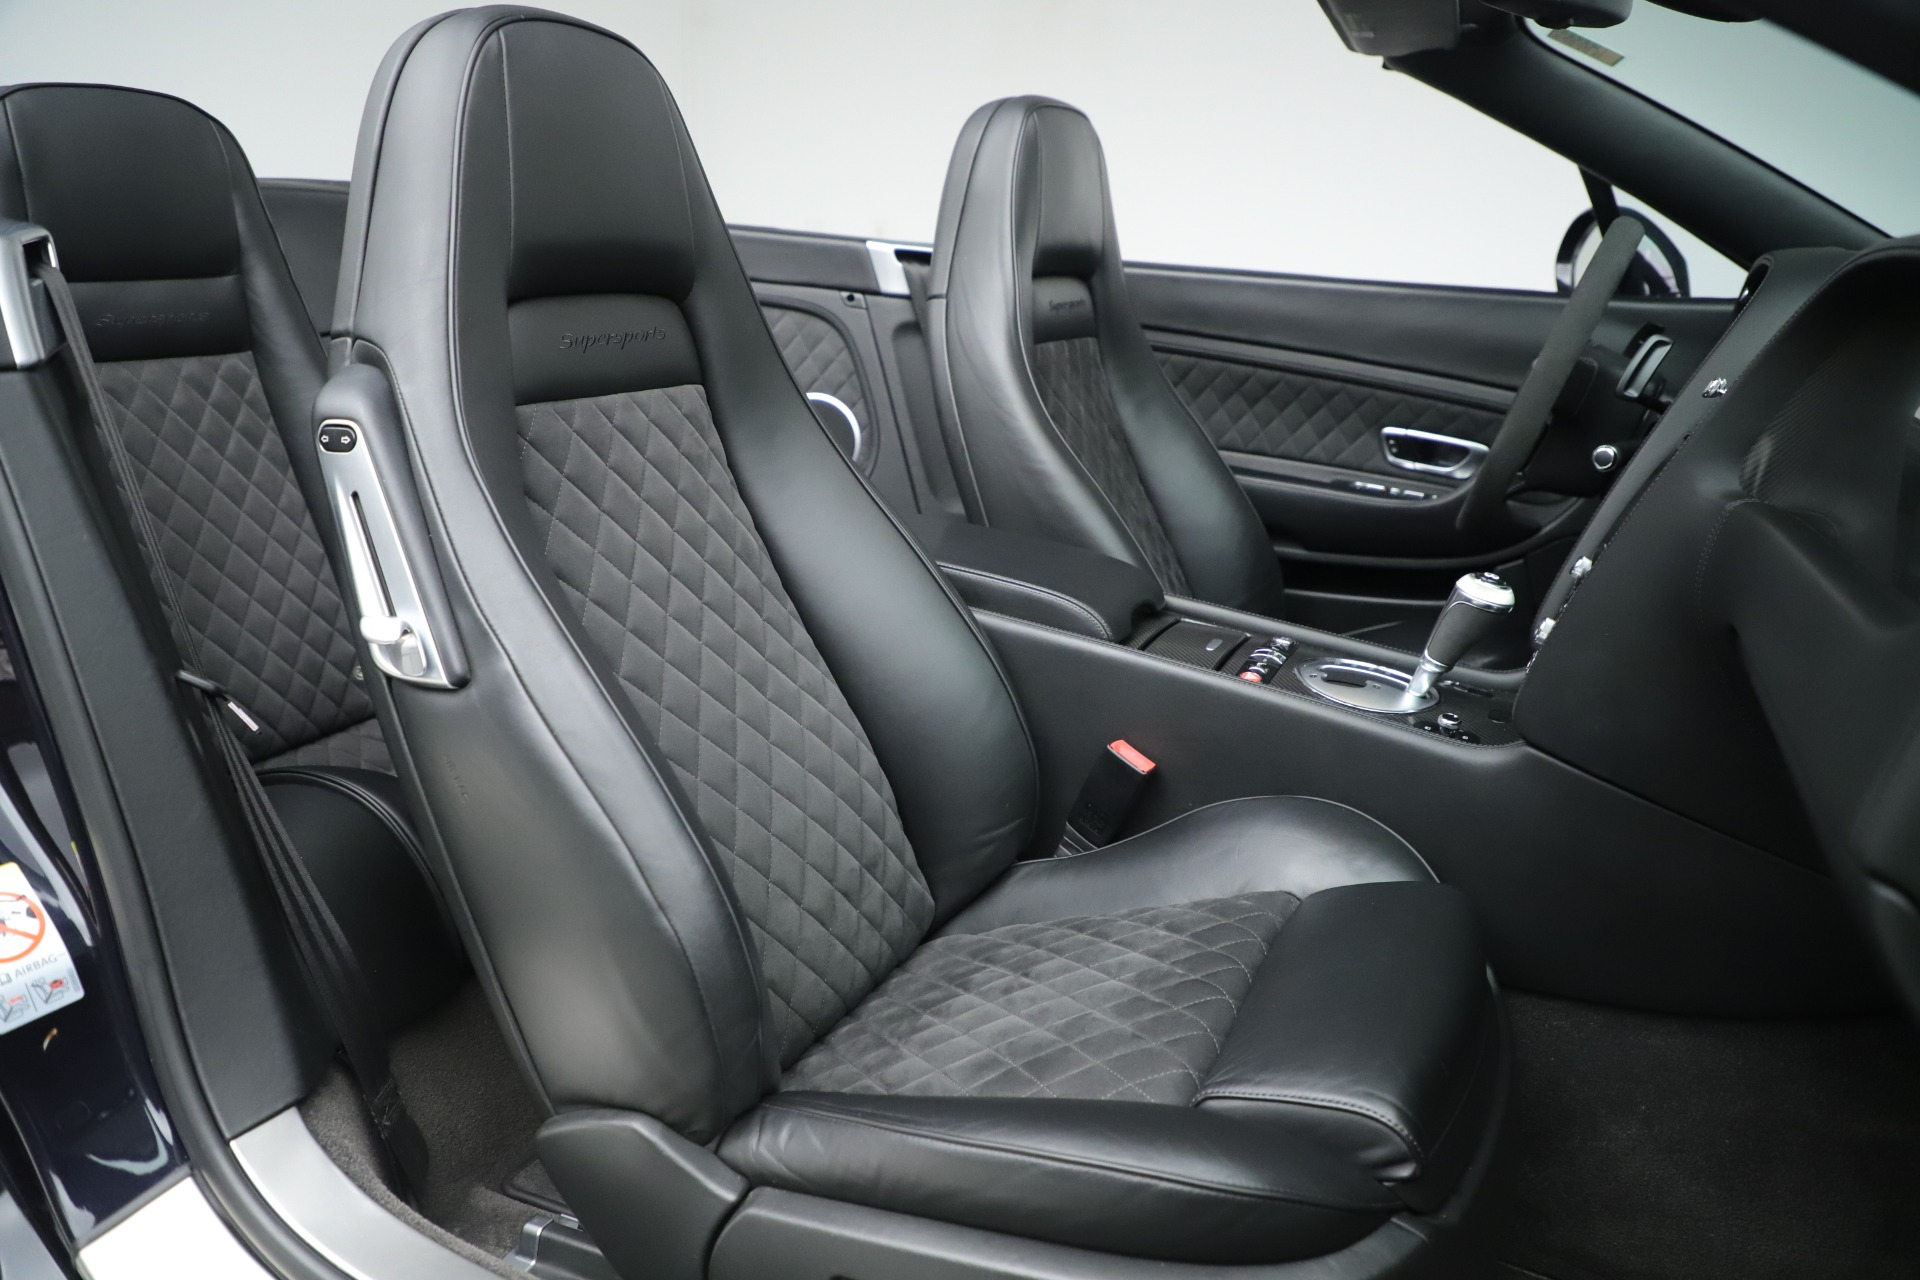 Used 2012 Bentley Continental GT Supersports For Sale In Westport, CT 3214_p30